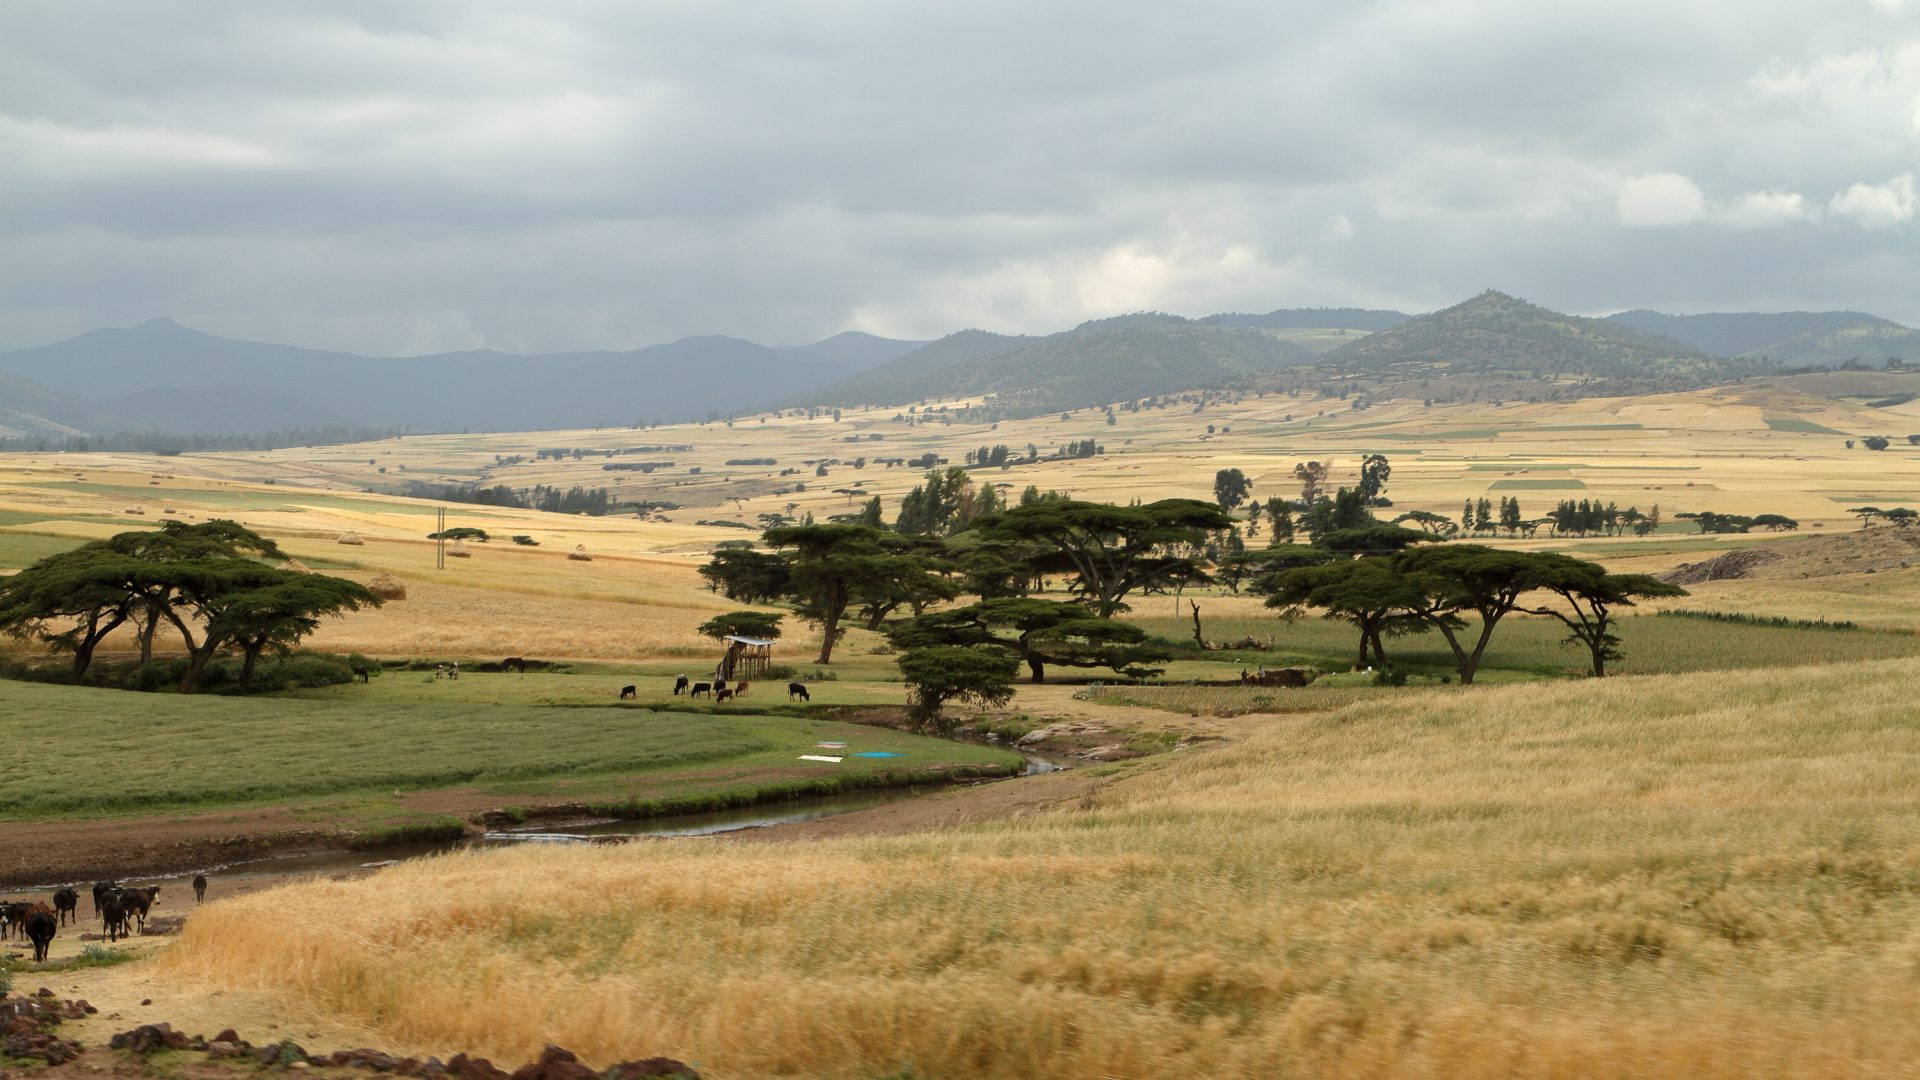 The landscapes of the Bale Mountains in Ethiopia.